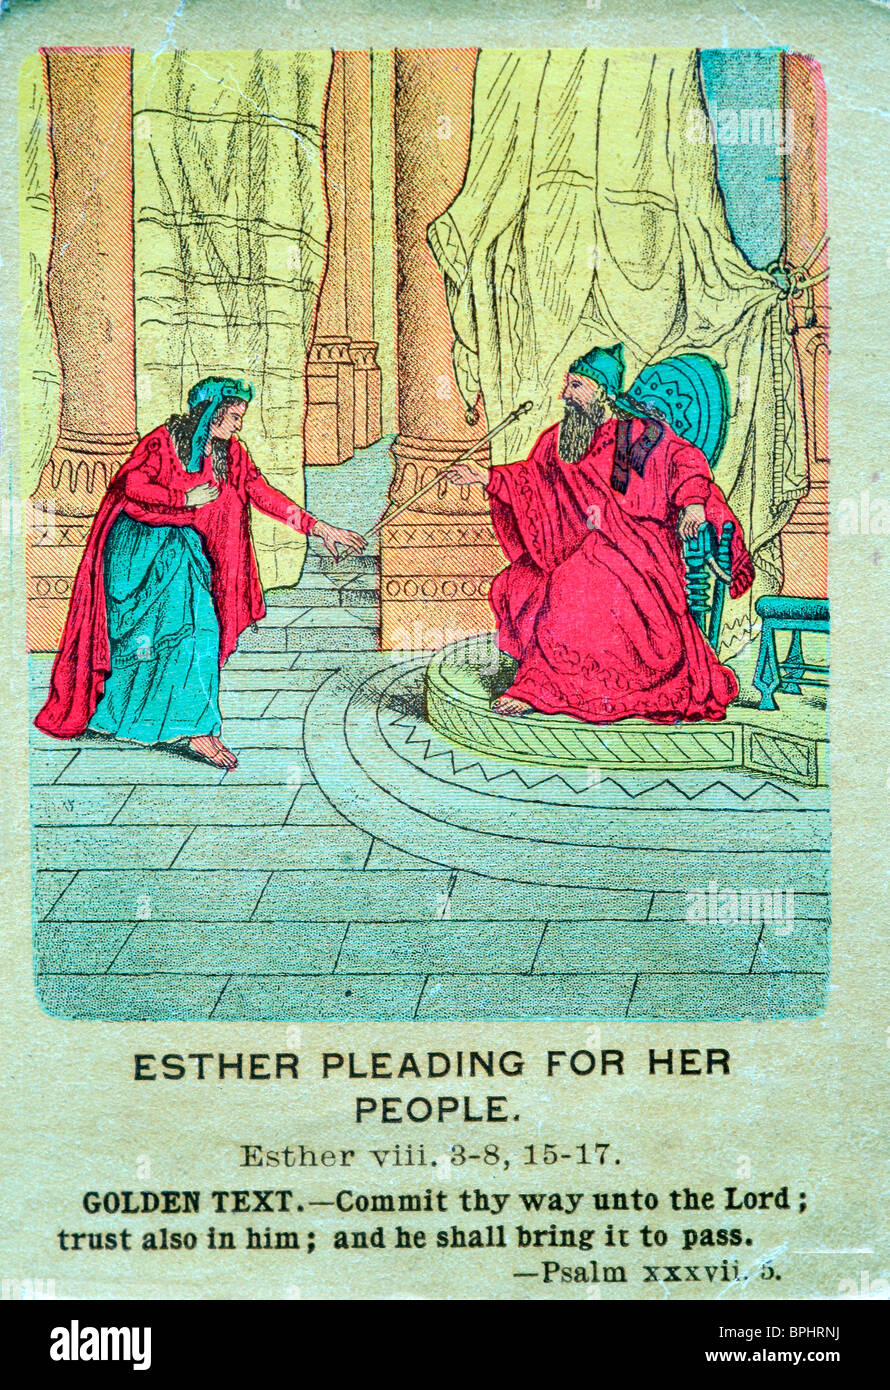 Old bible card, Esther pleading for her people - Stock Image